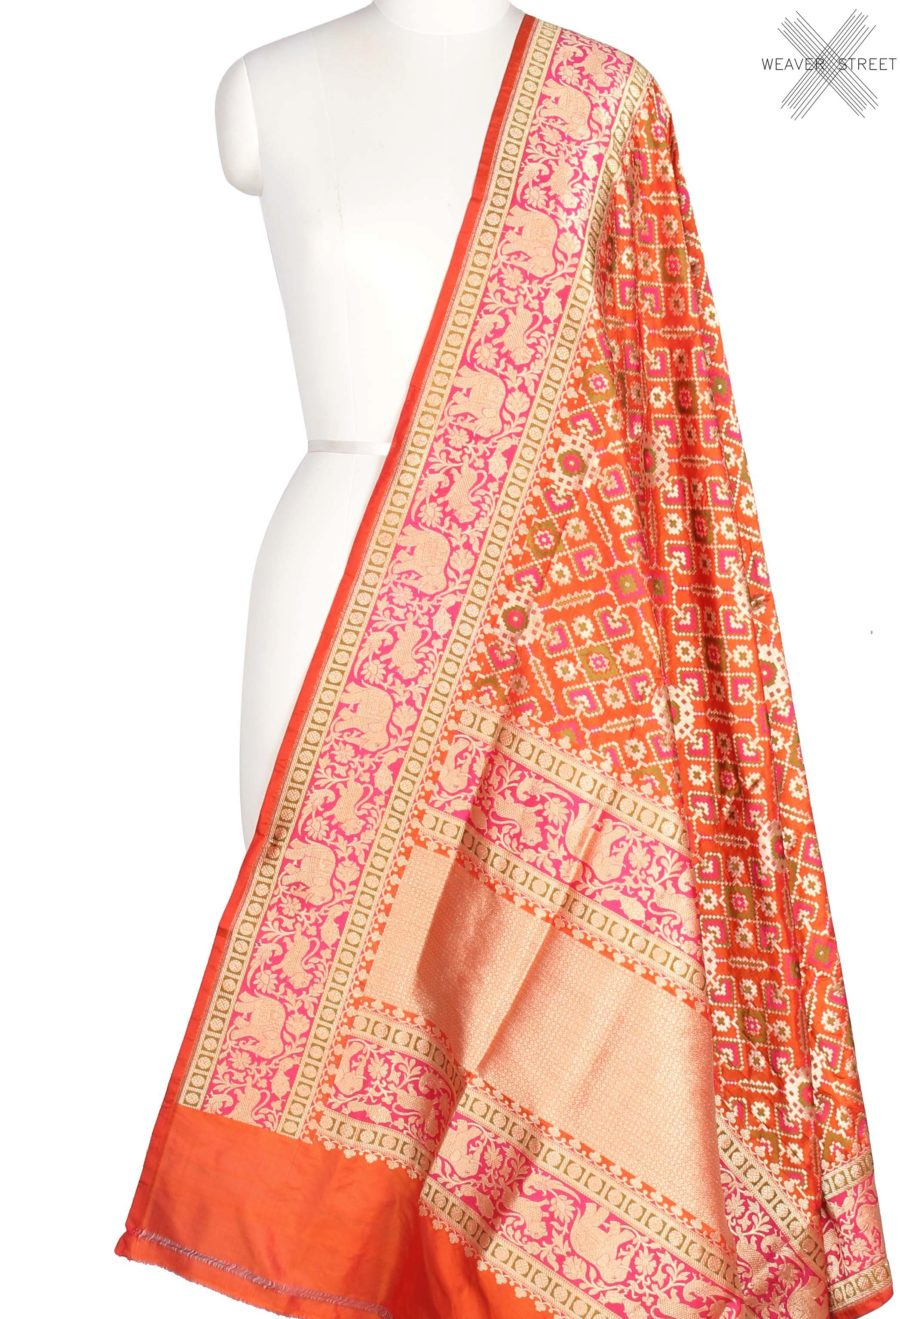 Orange Katan Silk Handwoven Banarasi Dupatta with meenedar patola jaal (1) Main